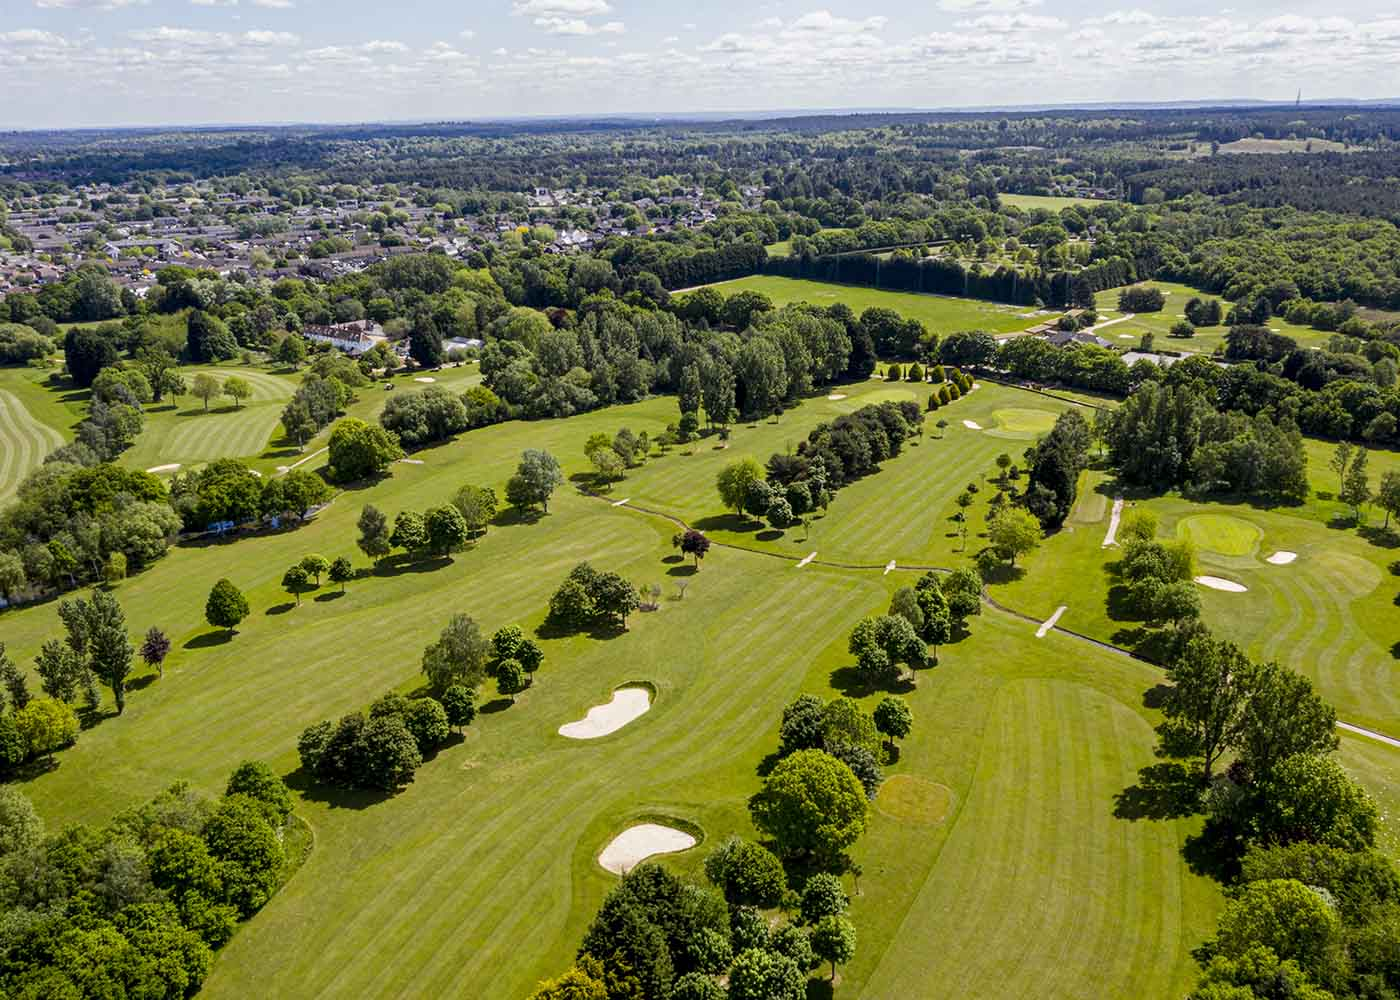 Golf Drone Photography